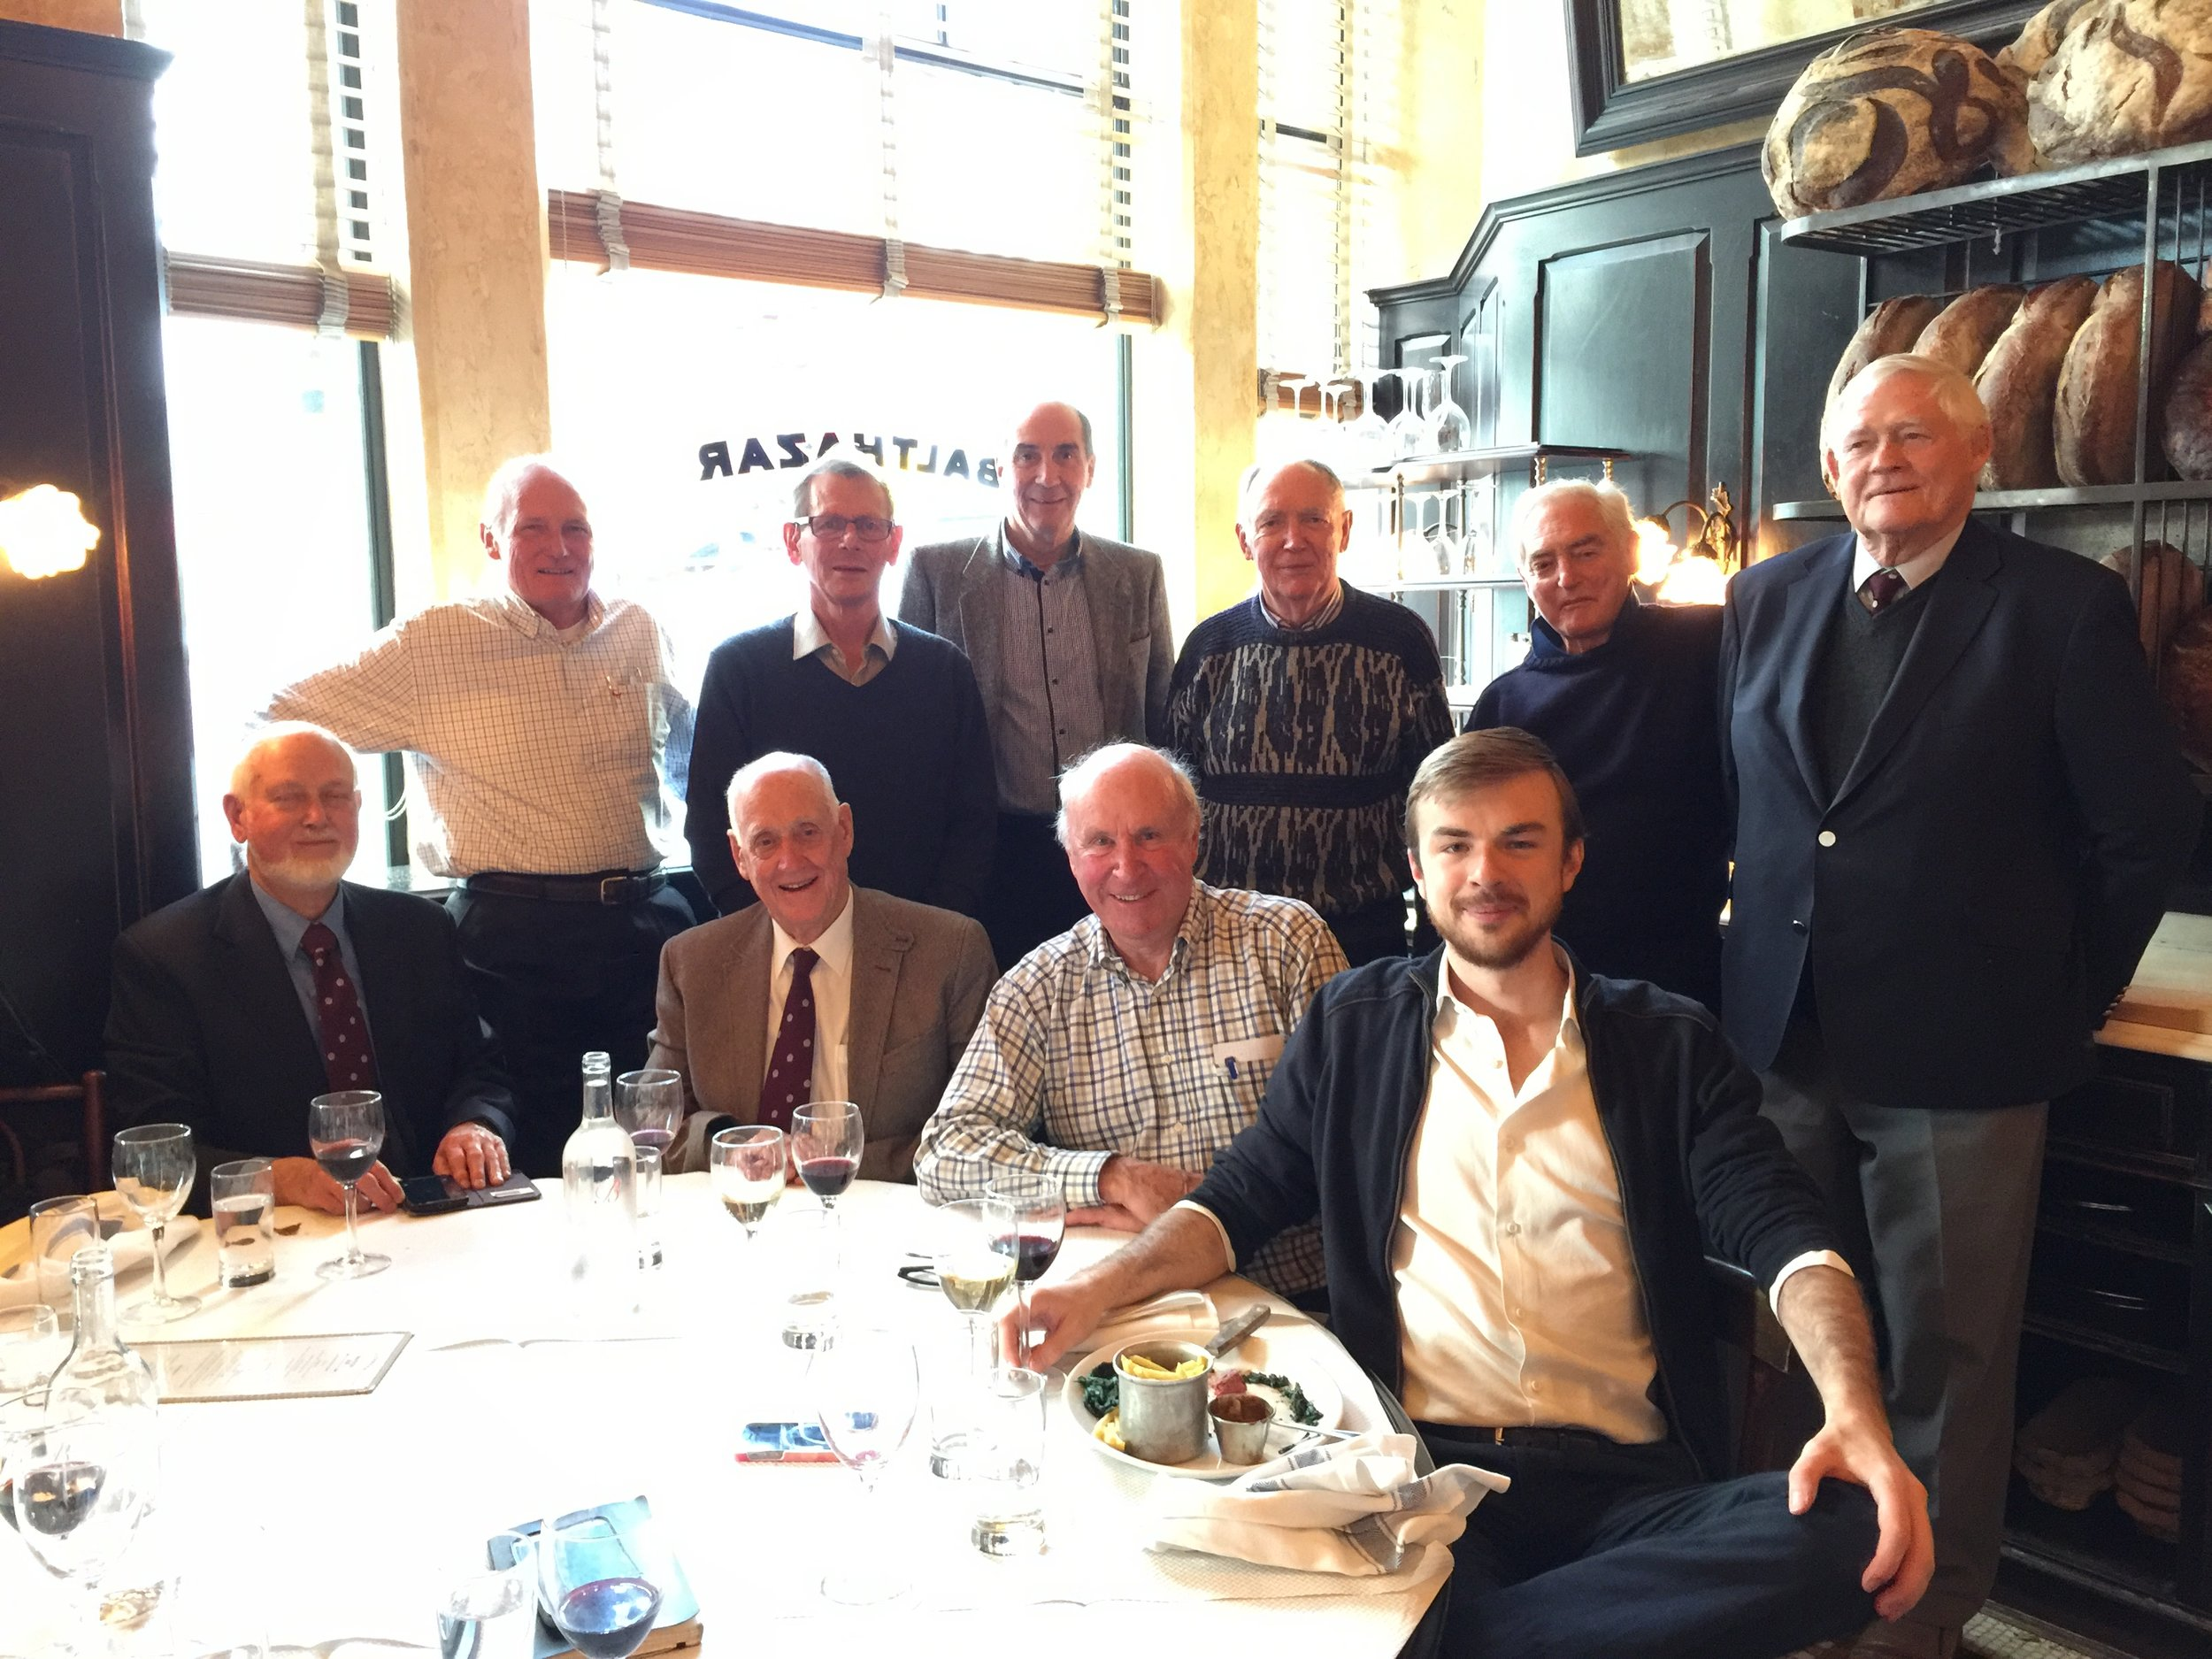 Gathering in Covent Garden, London  Back row l to r: Ronnie Andrews, Carey Keates, Nigel Gaymer, John Crosher, Ron Atkinson, Mike Andrews Front row l to r: Robin Crosher, Brian Brent, John O'Grady and Alex O'Grady (son of John)